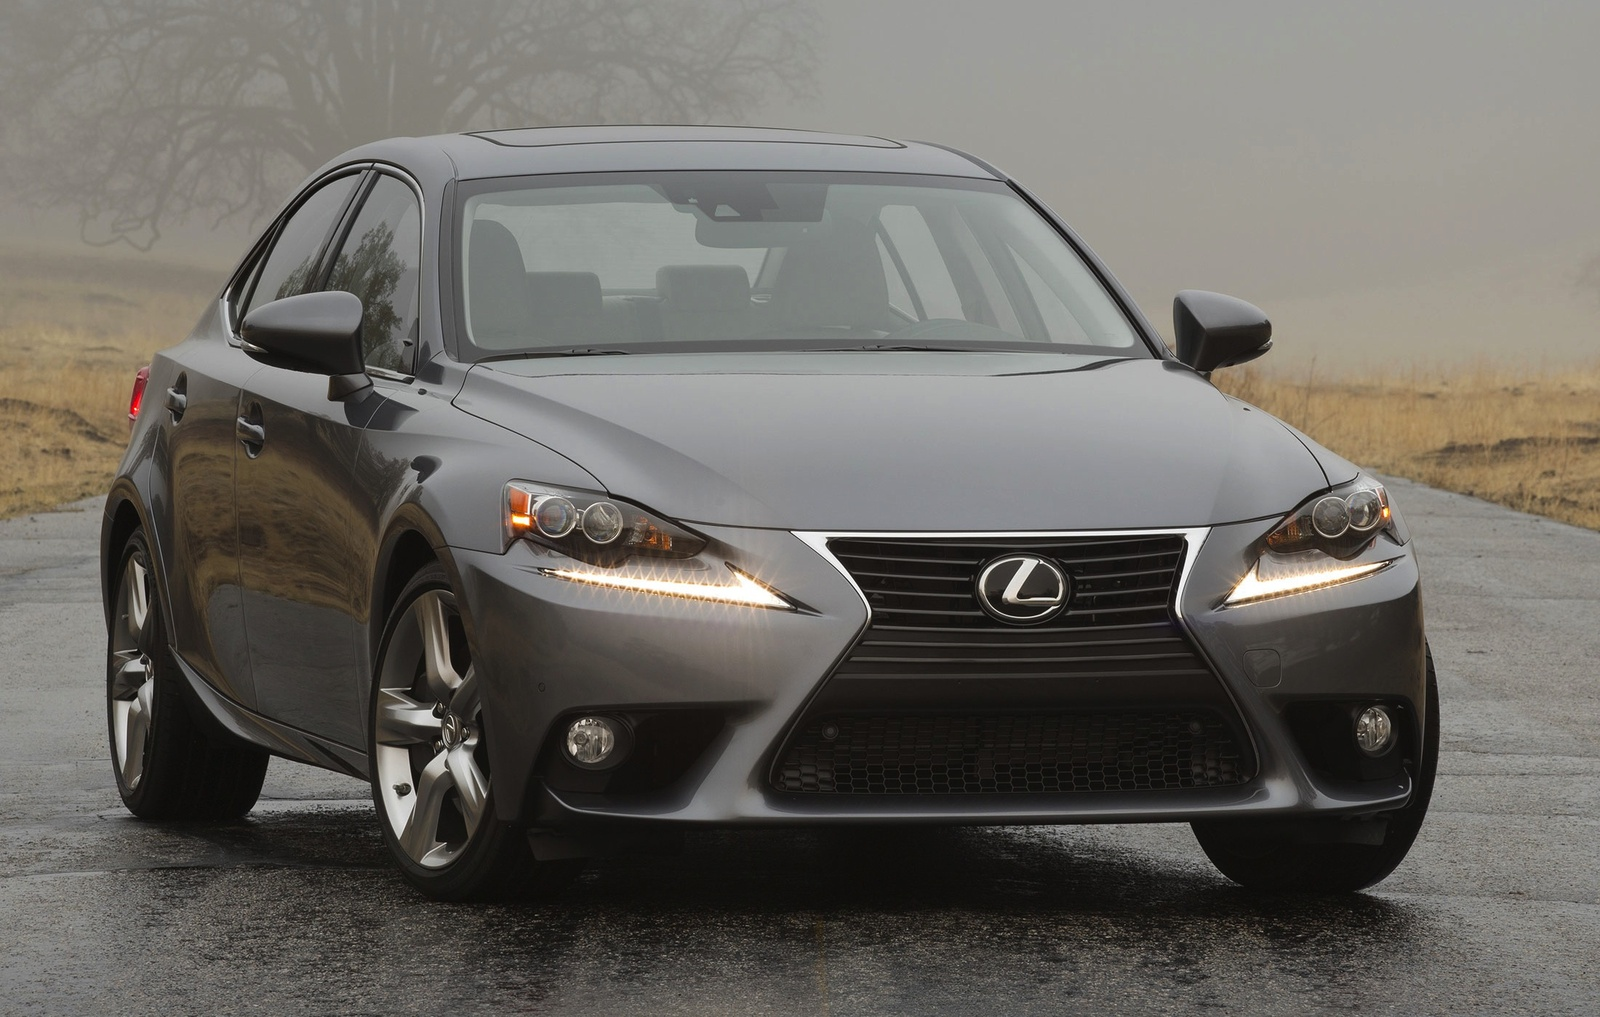 Used Lexus ES 350 for Sale (with Photos) - CARFAX